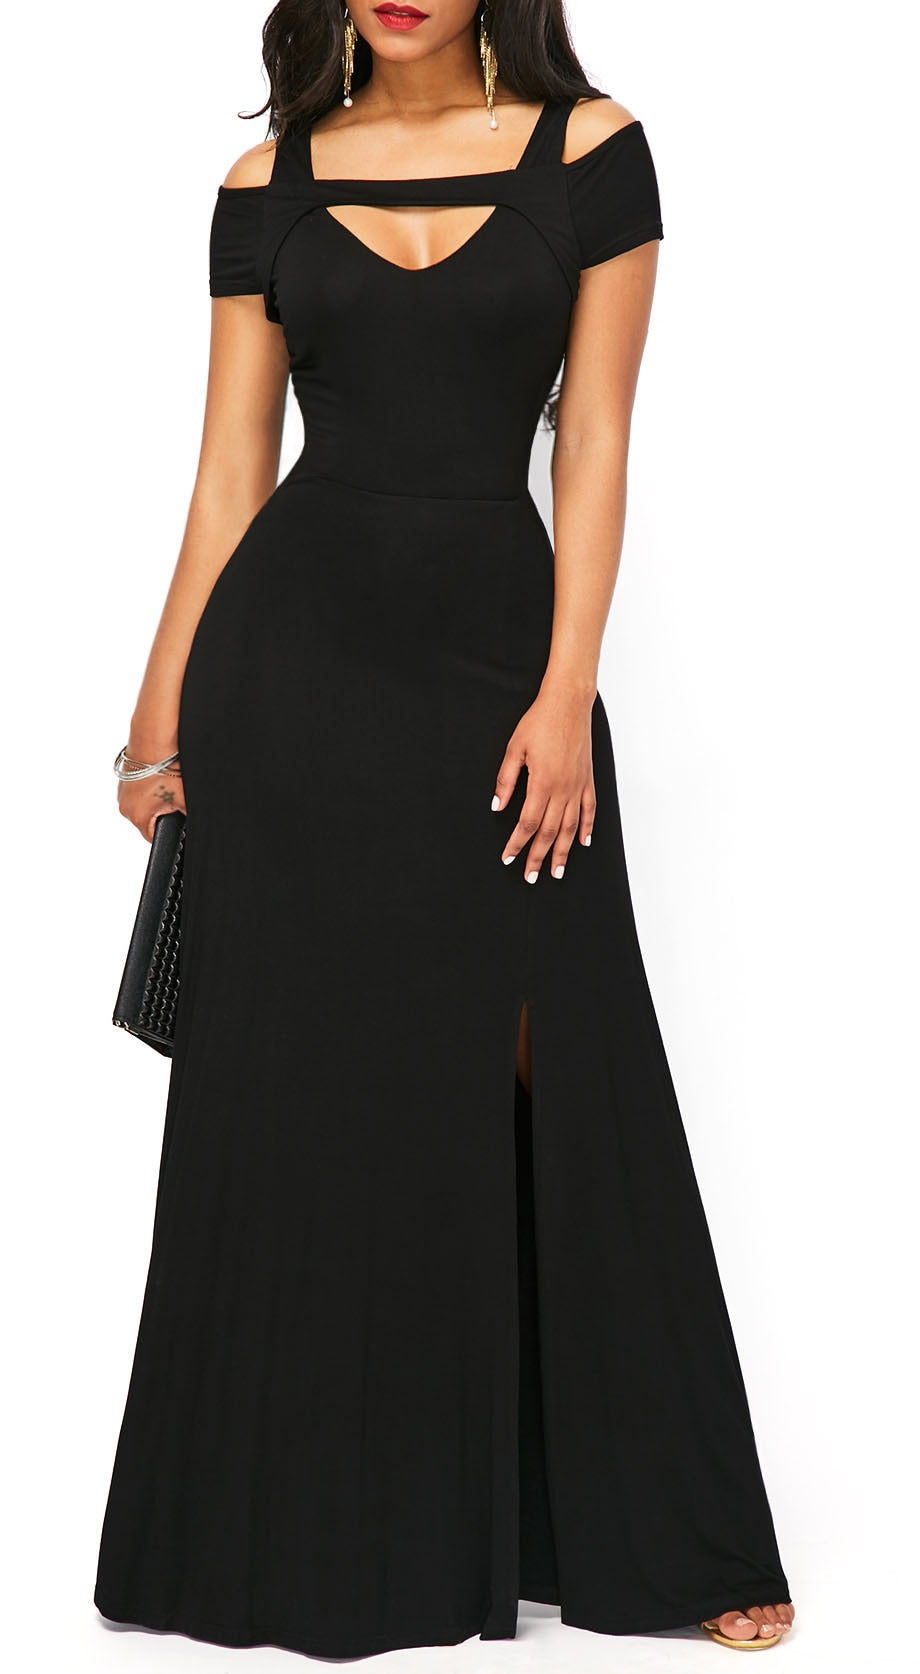 Elegant Off Shoulder Split Long Party Dress